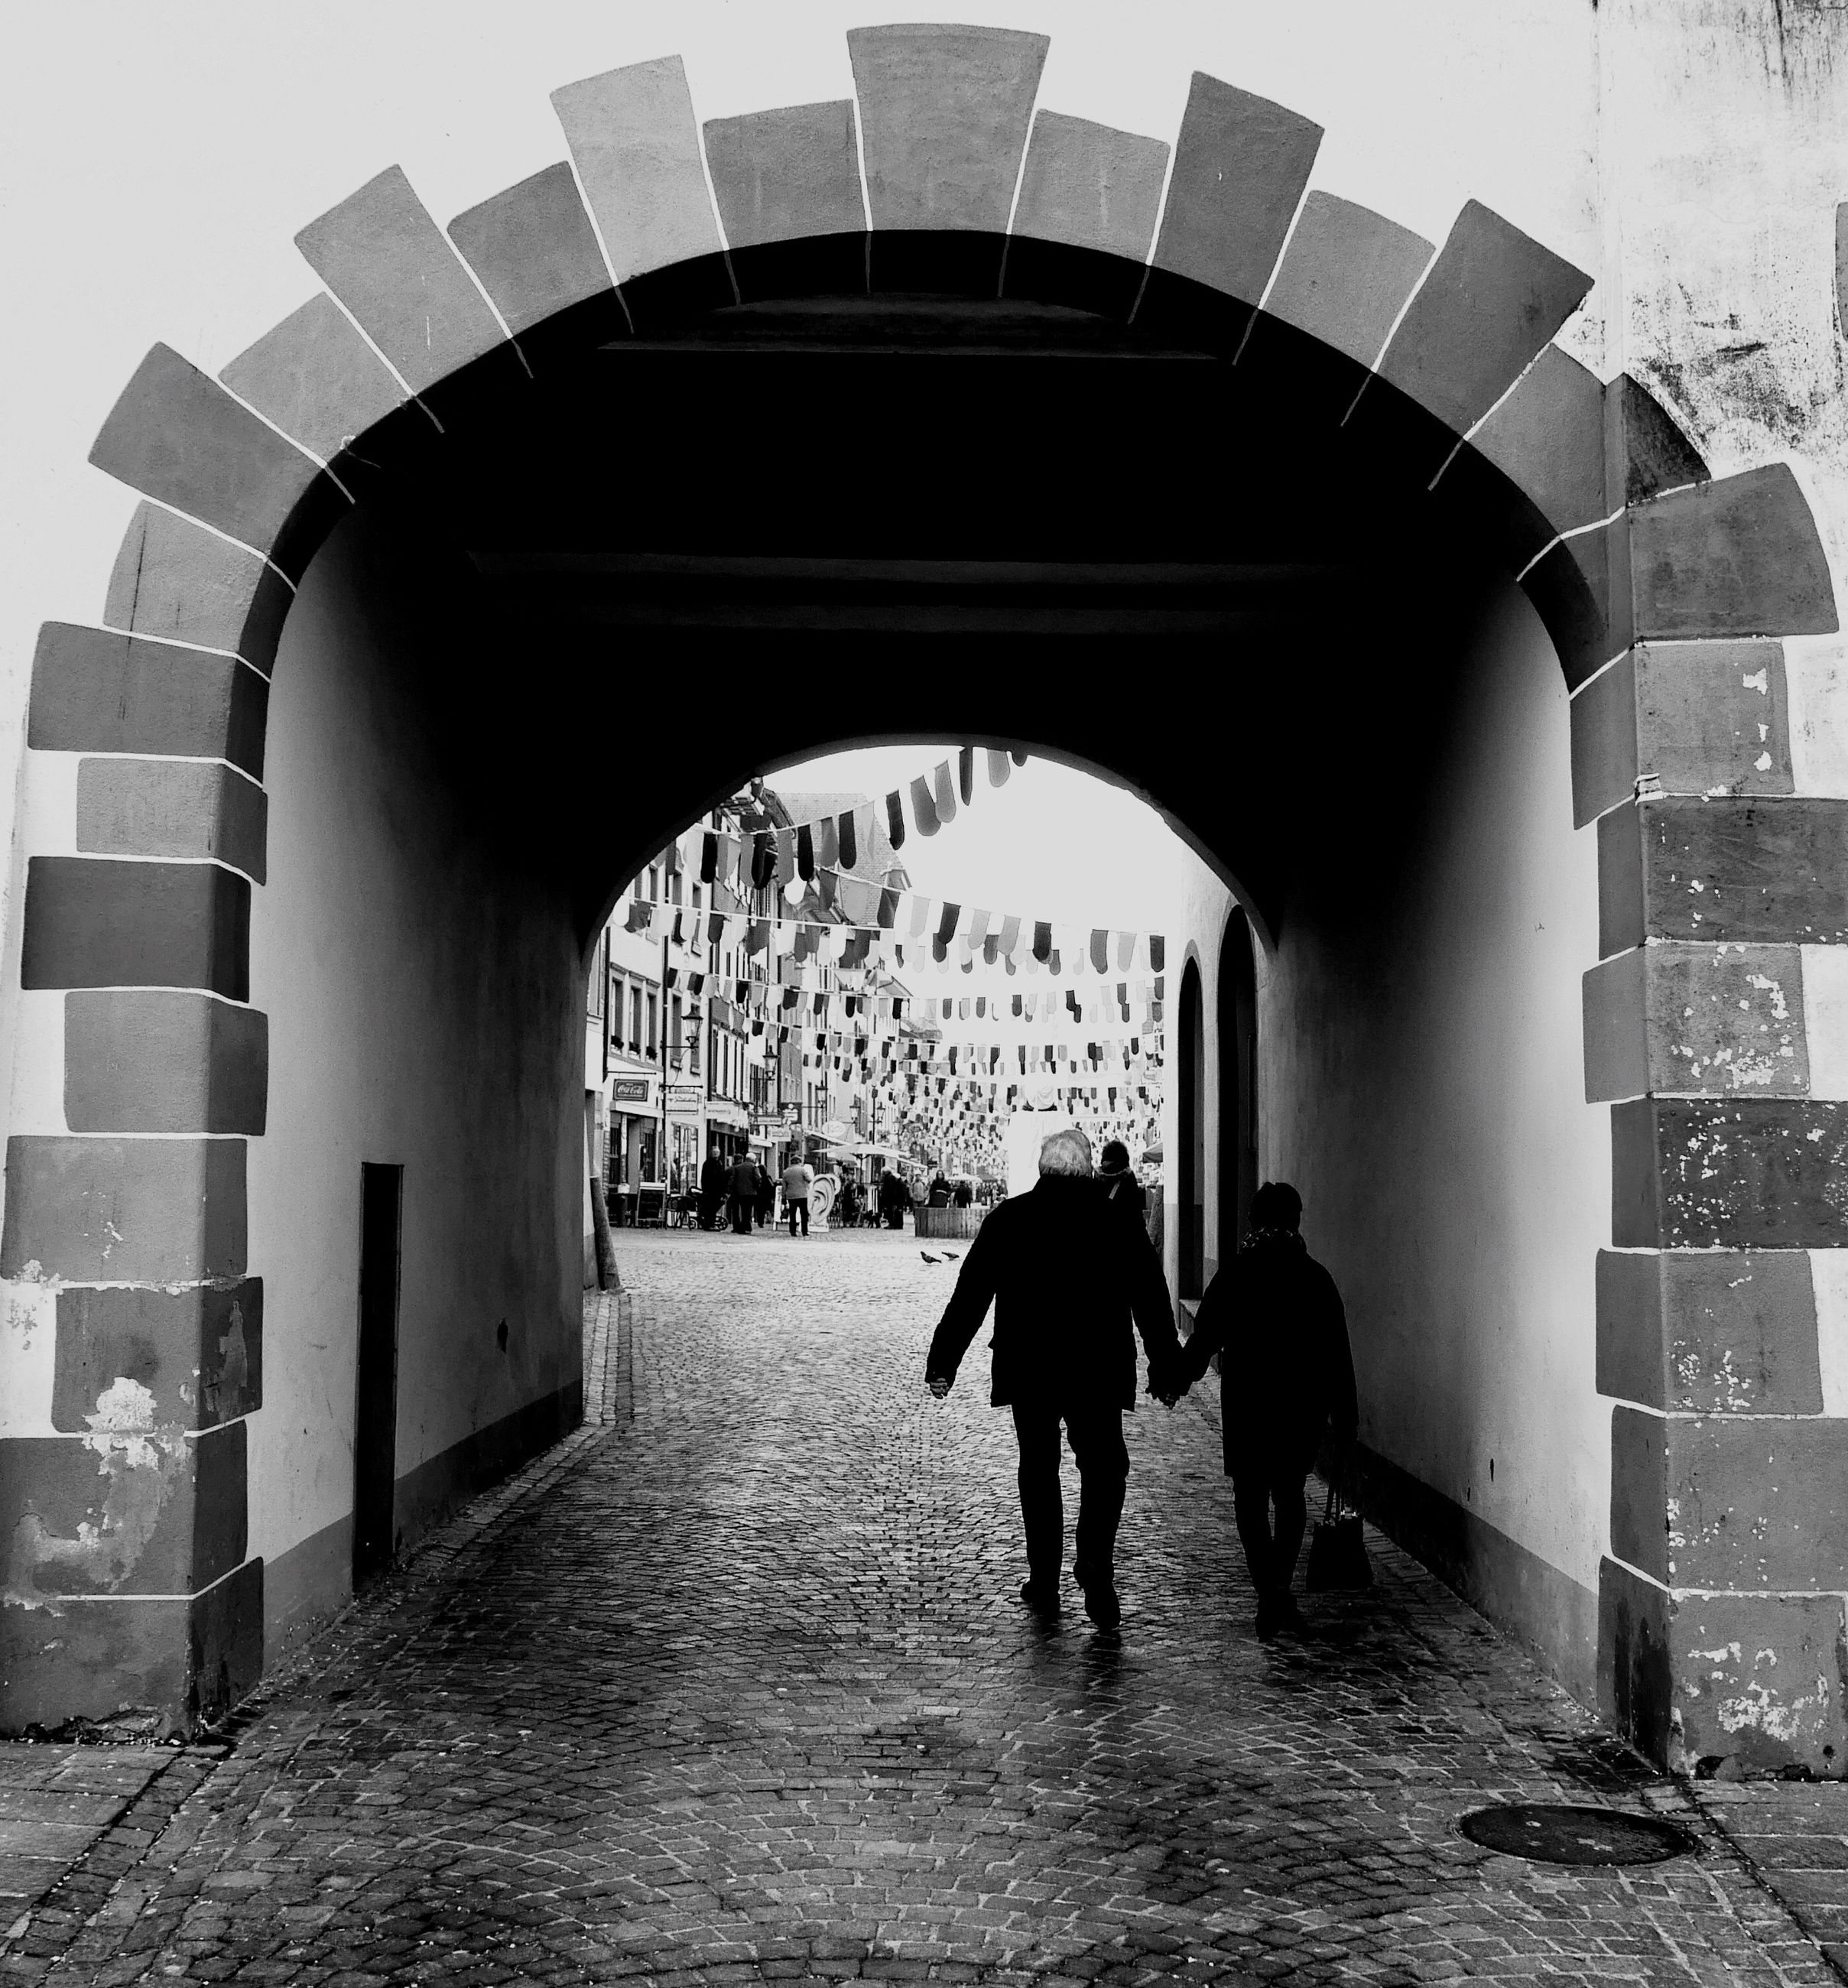 architecture, built structure, walking, full length, arch, lifestyles, men, rear view, person, indoors, leisure activity, building exterior, archway, the way forward, building, tunnel, wall - building feature